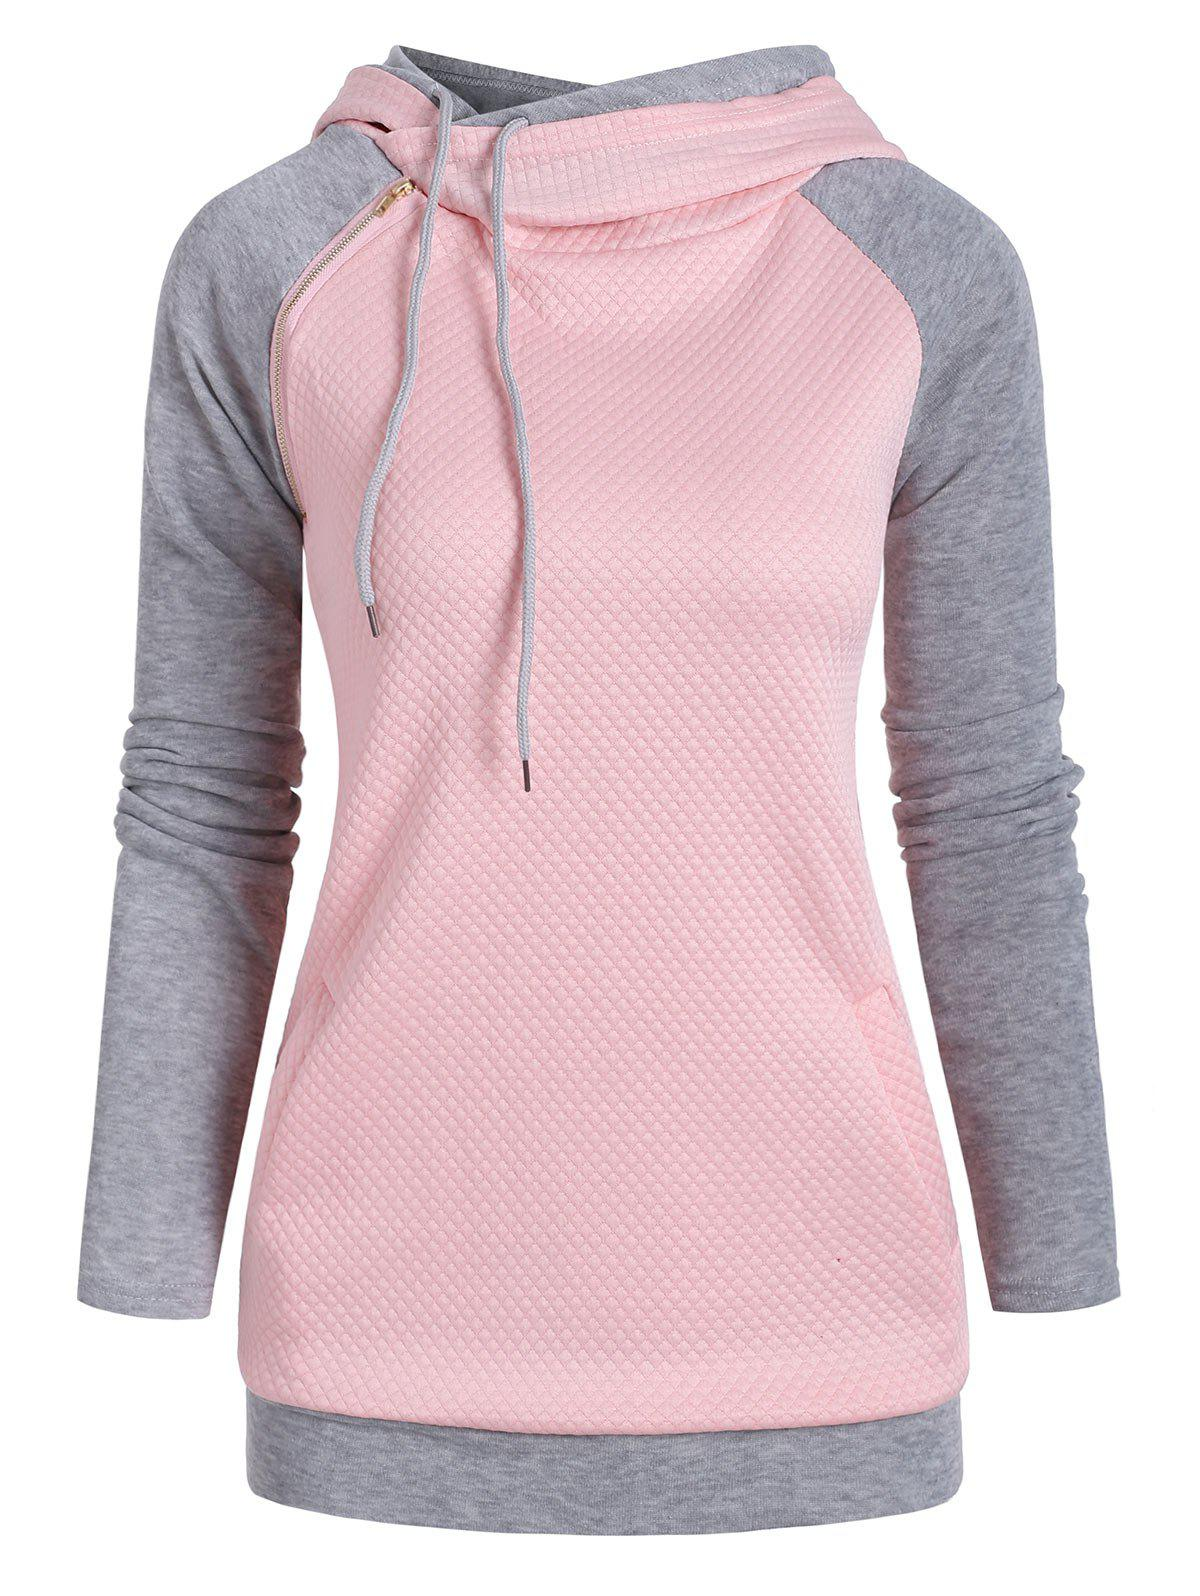 Heathered Textured Zipper Embellished Pockets Hoodie - PINK 2XL